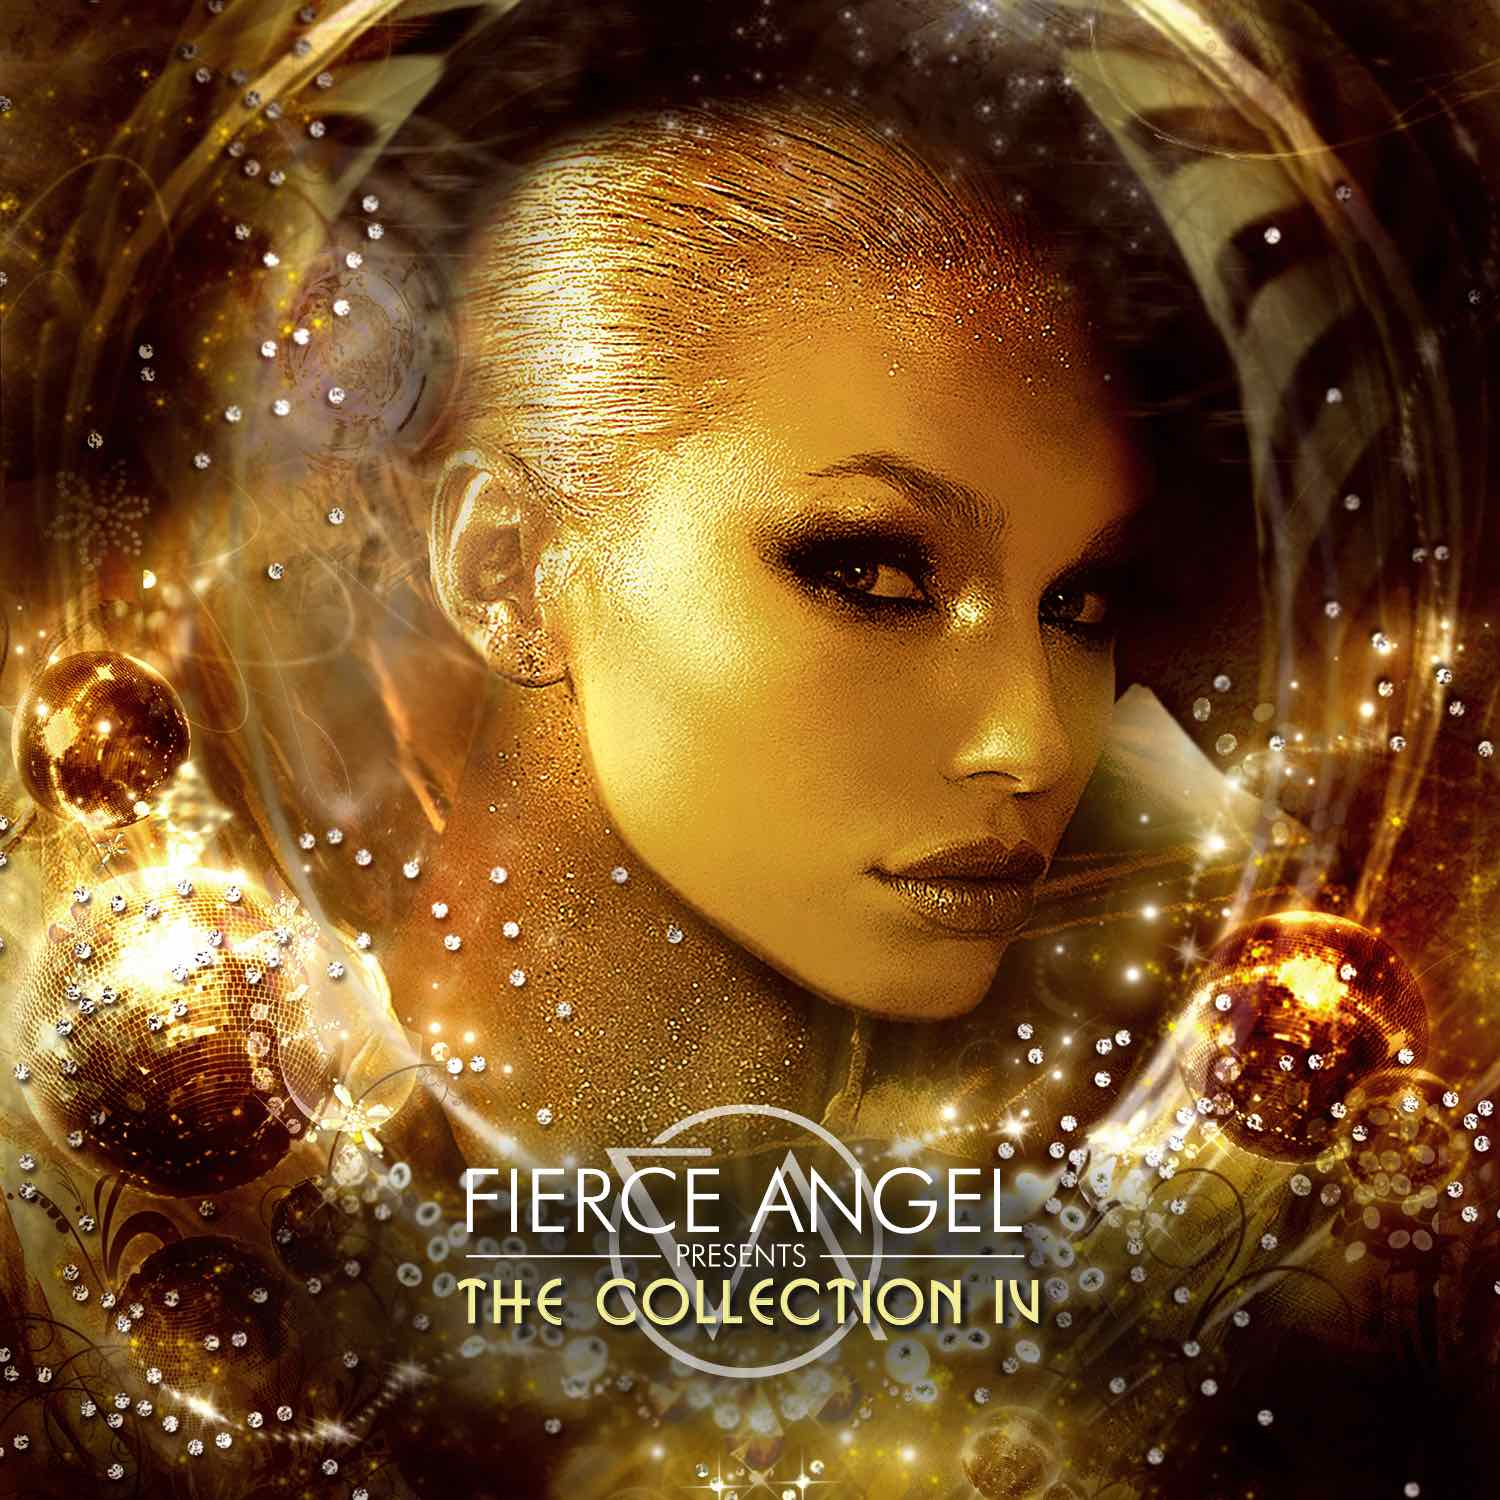 The Collection IV : - Fierce Angel